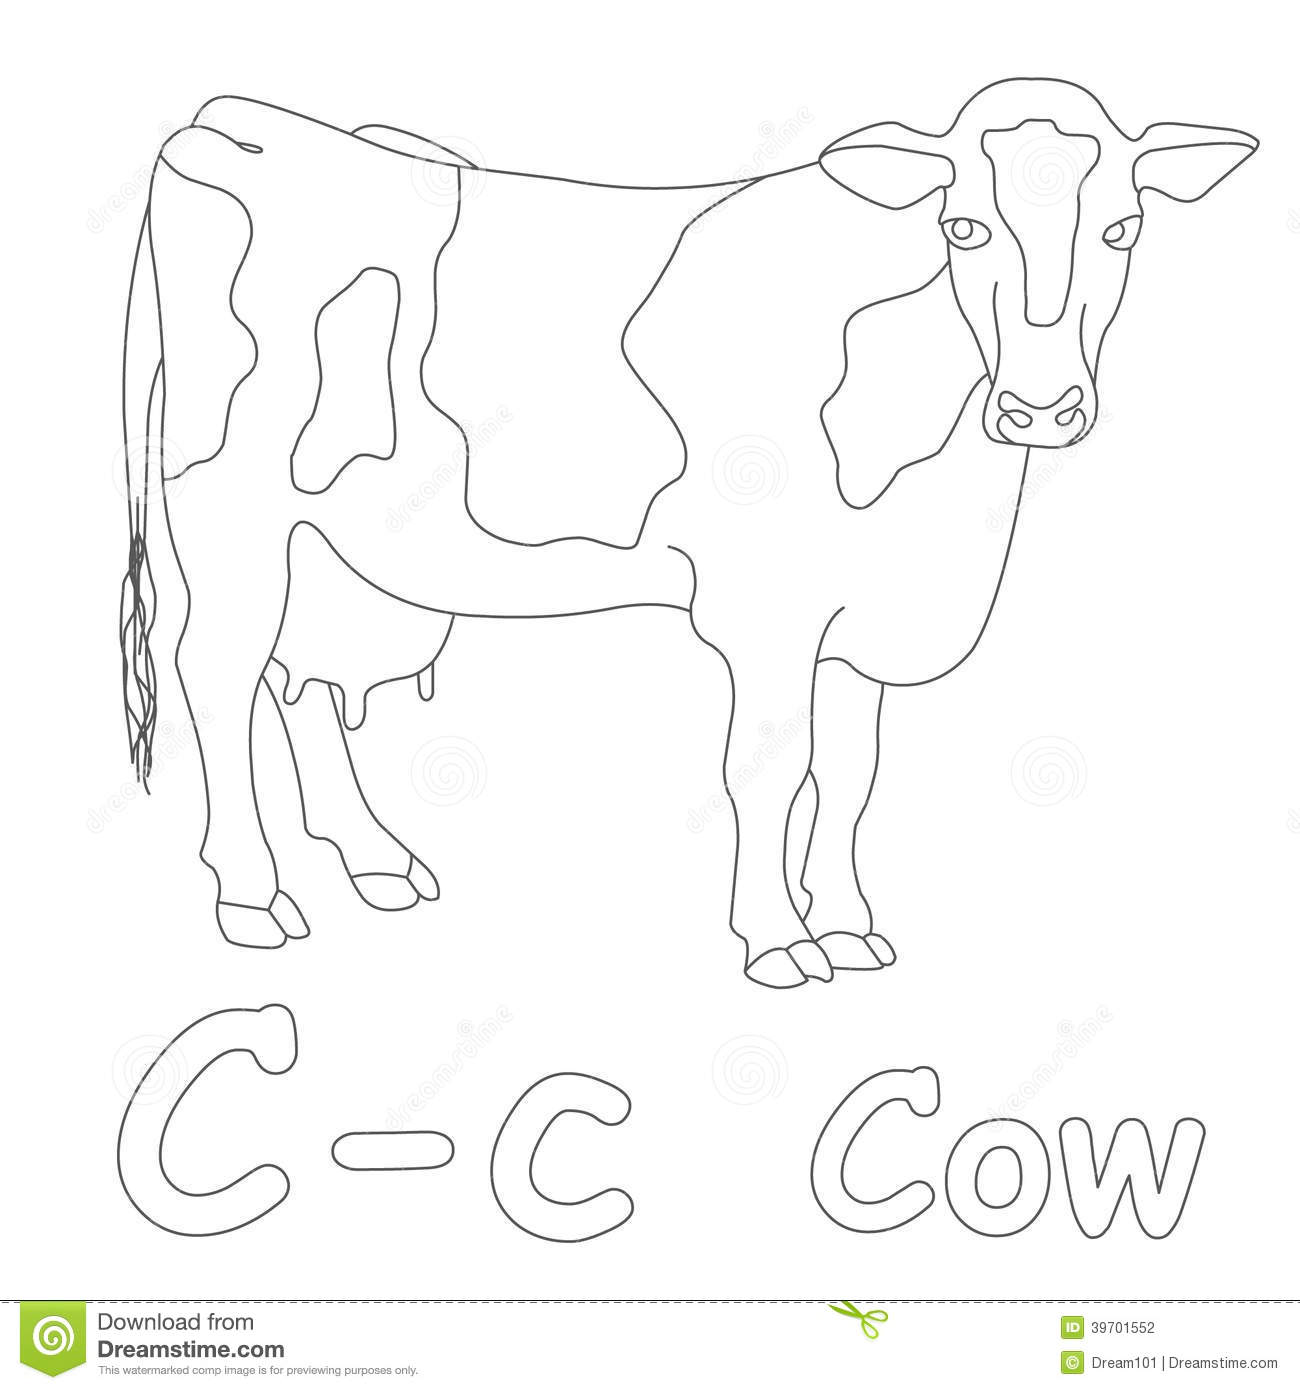 C For Cow Coloring Page Stock Illustration Illustration